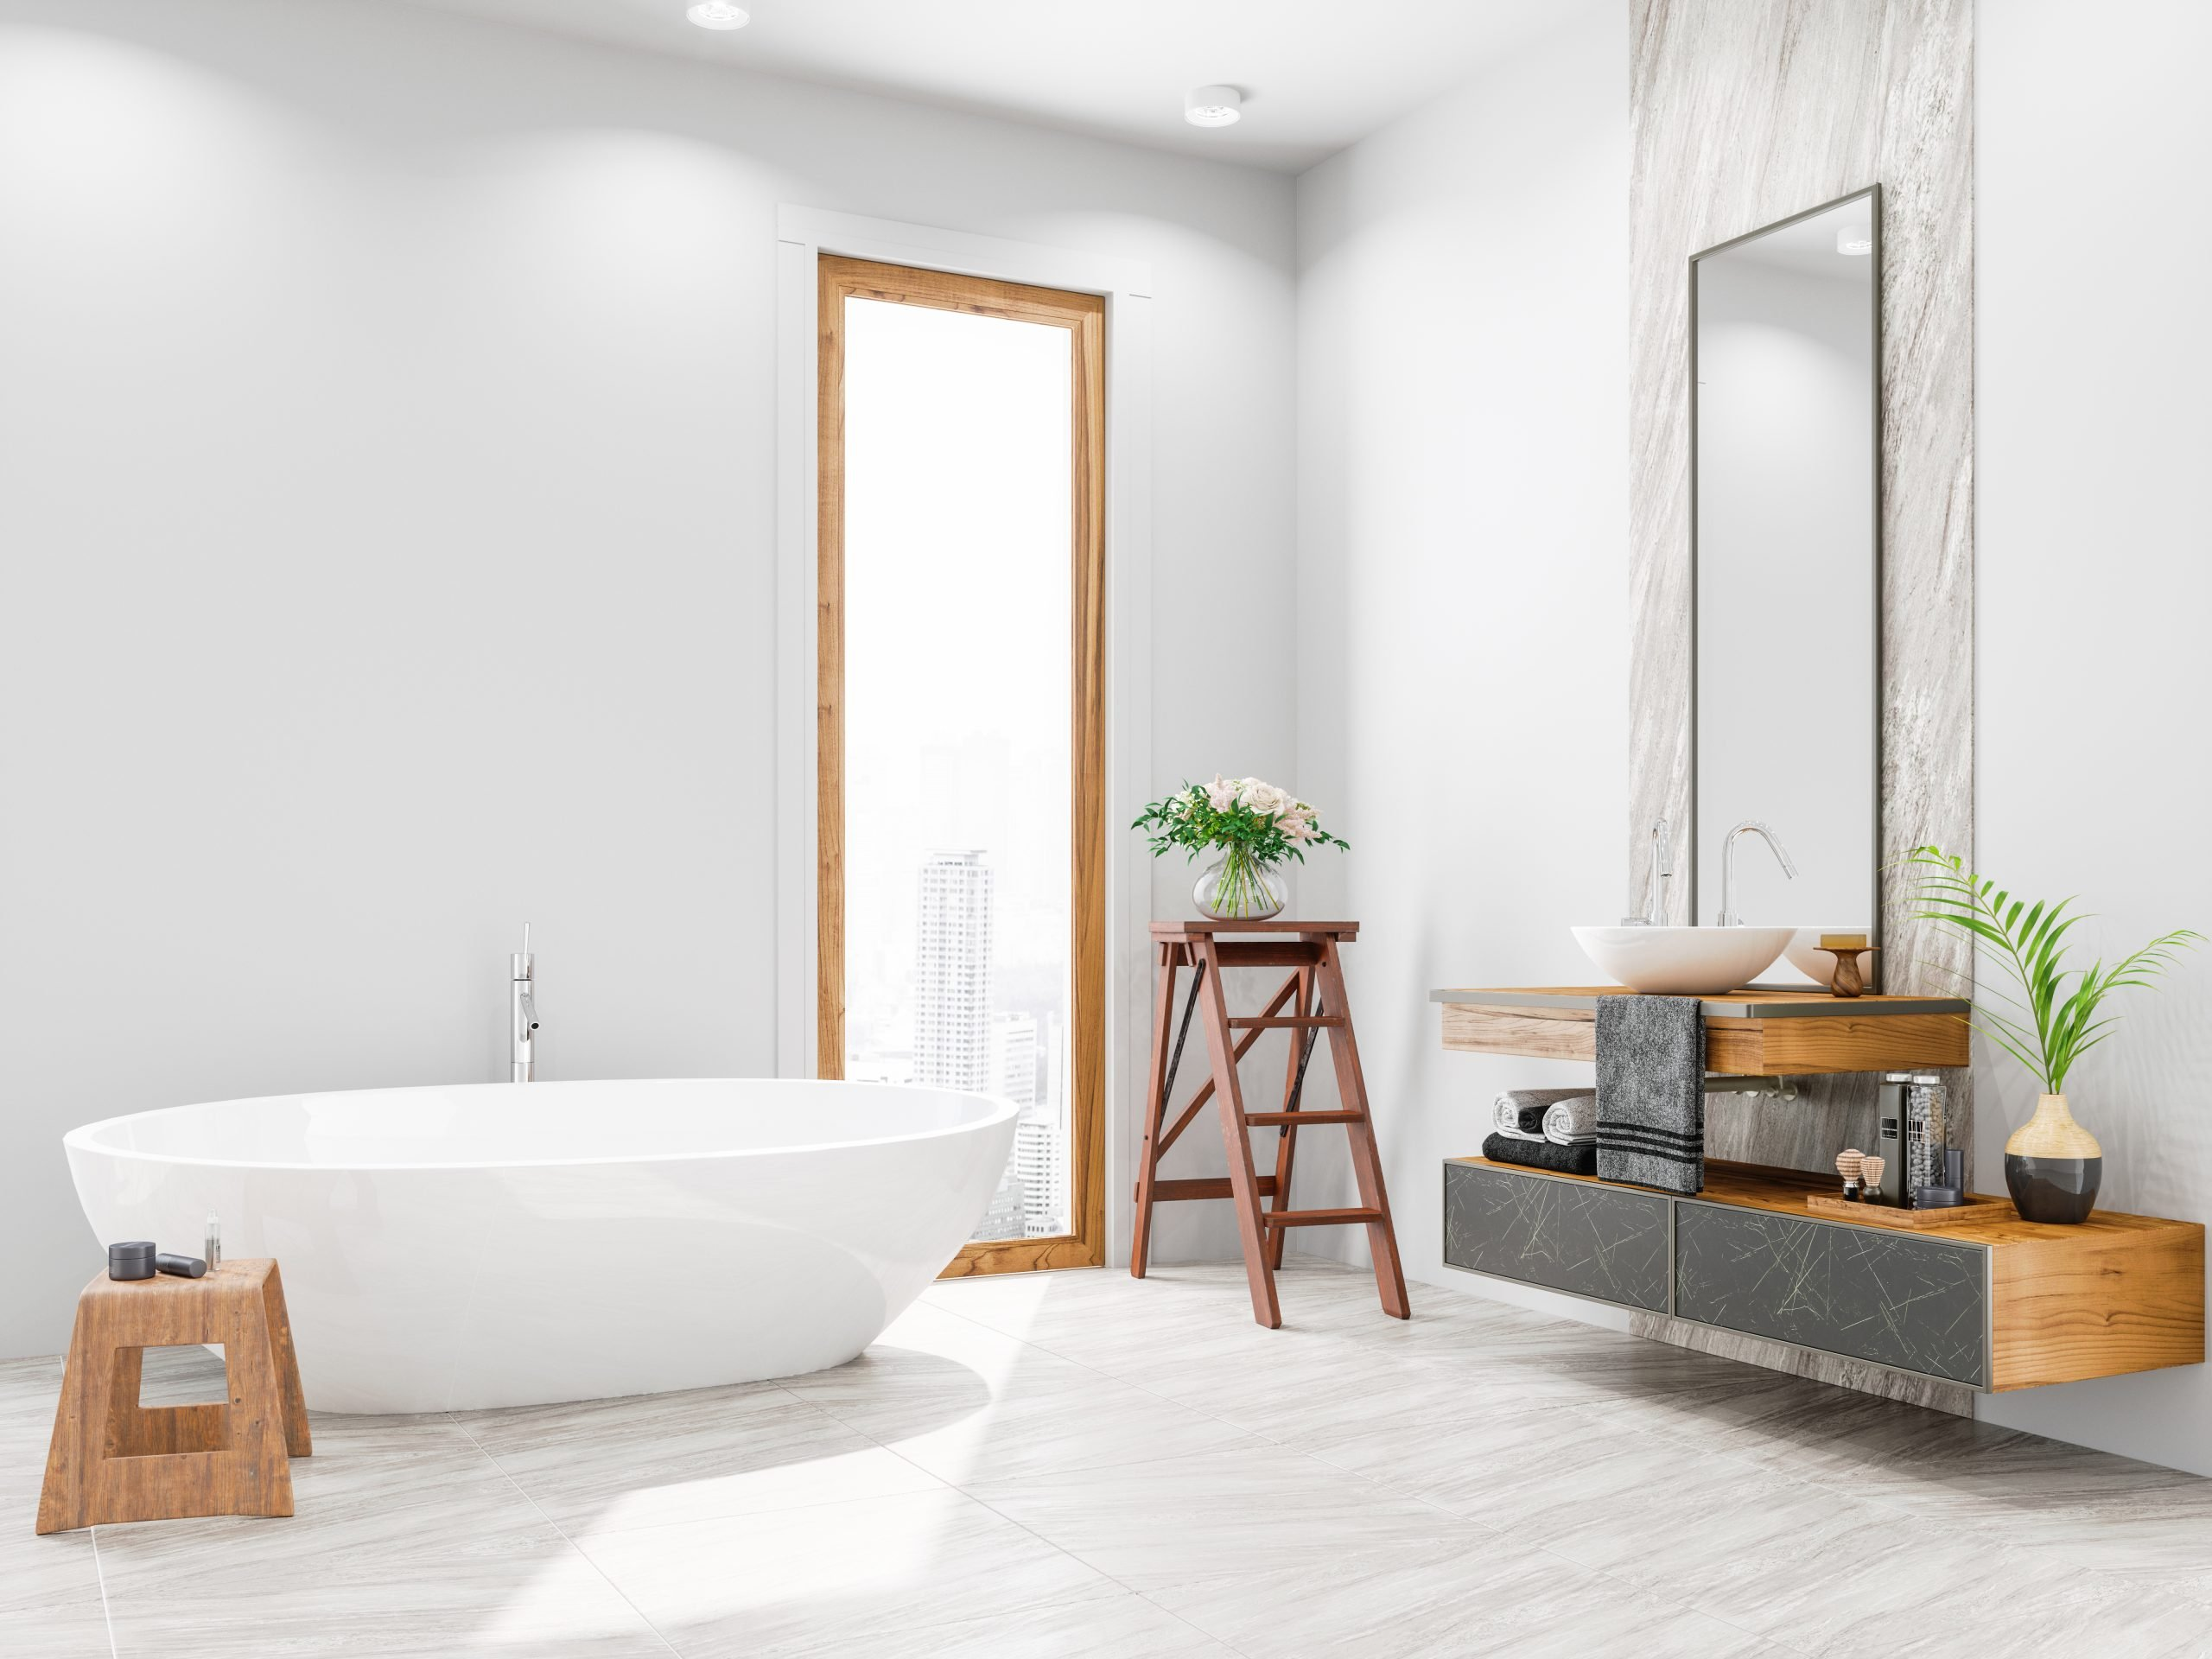 Bathroom Design Ideas: Everything You Need to Know